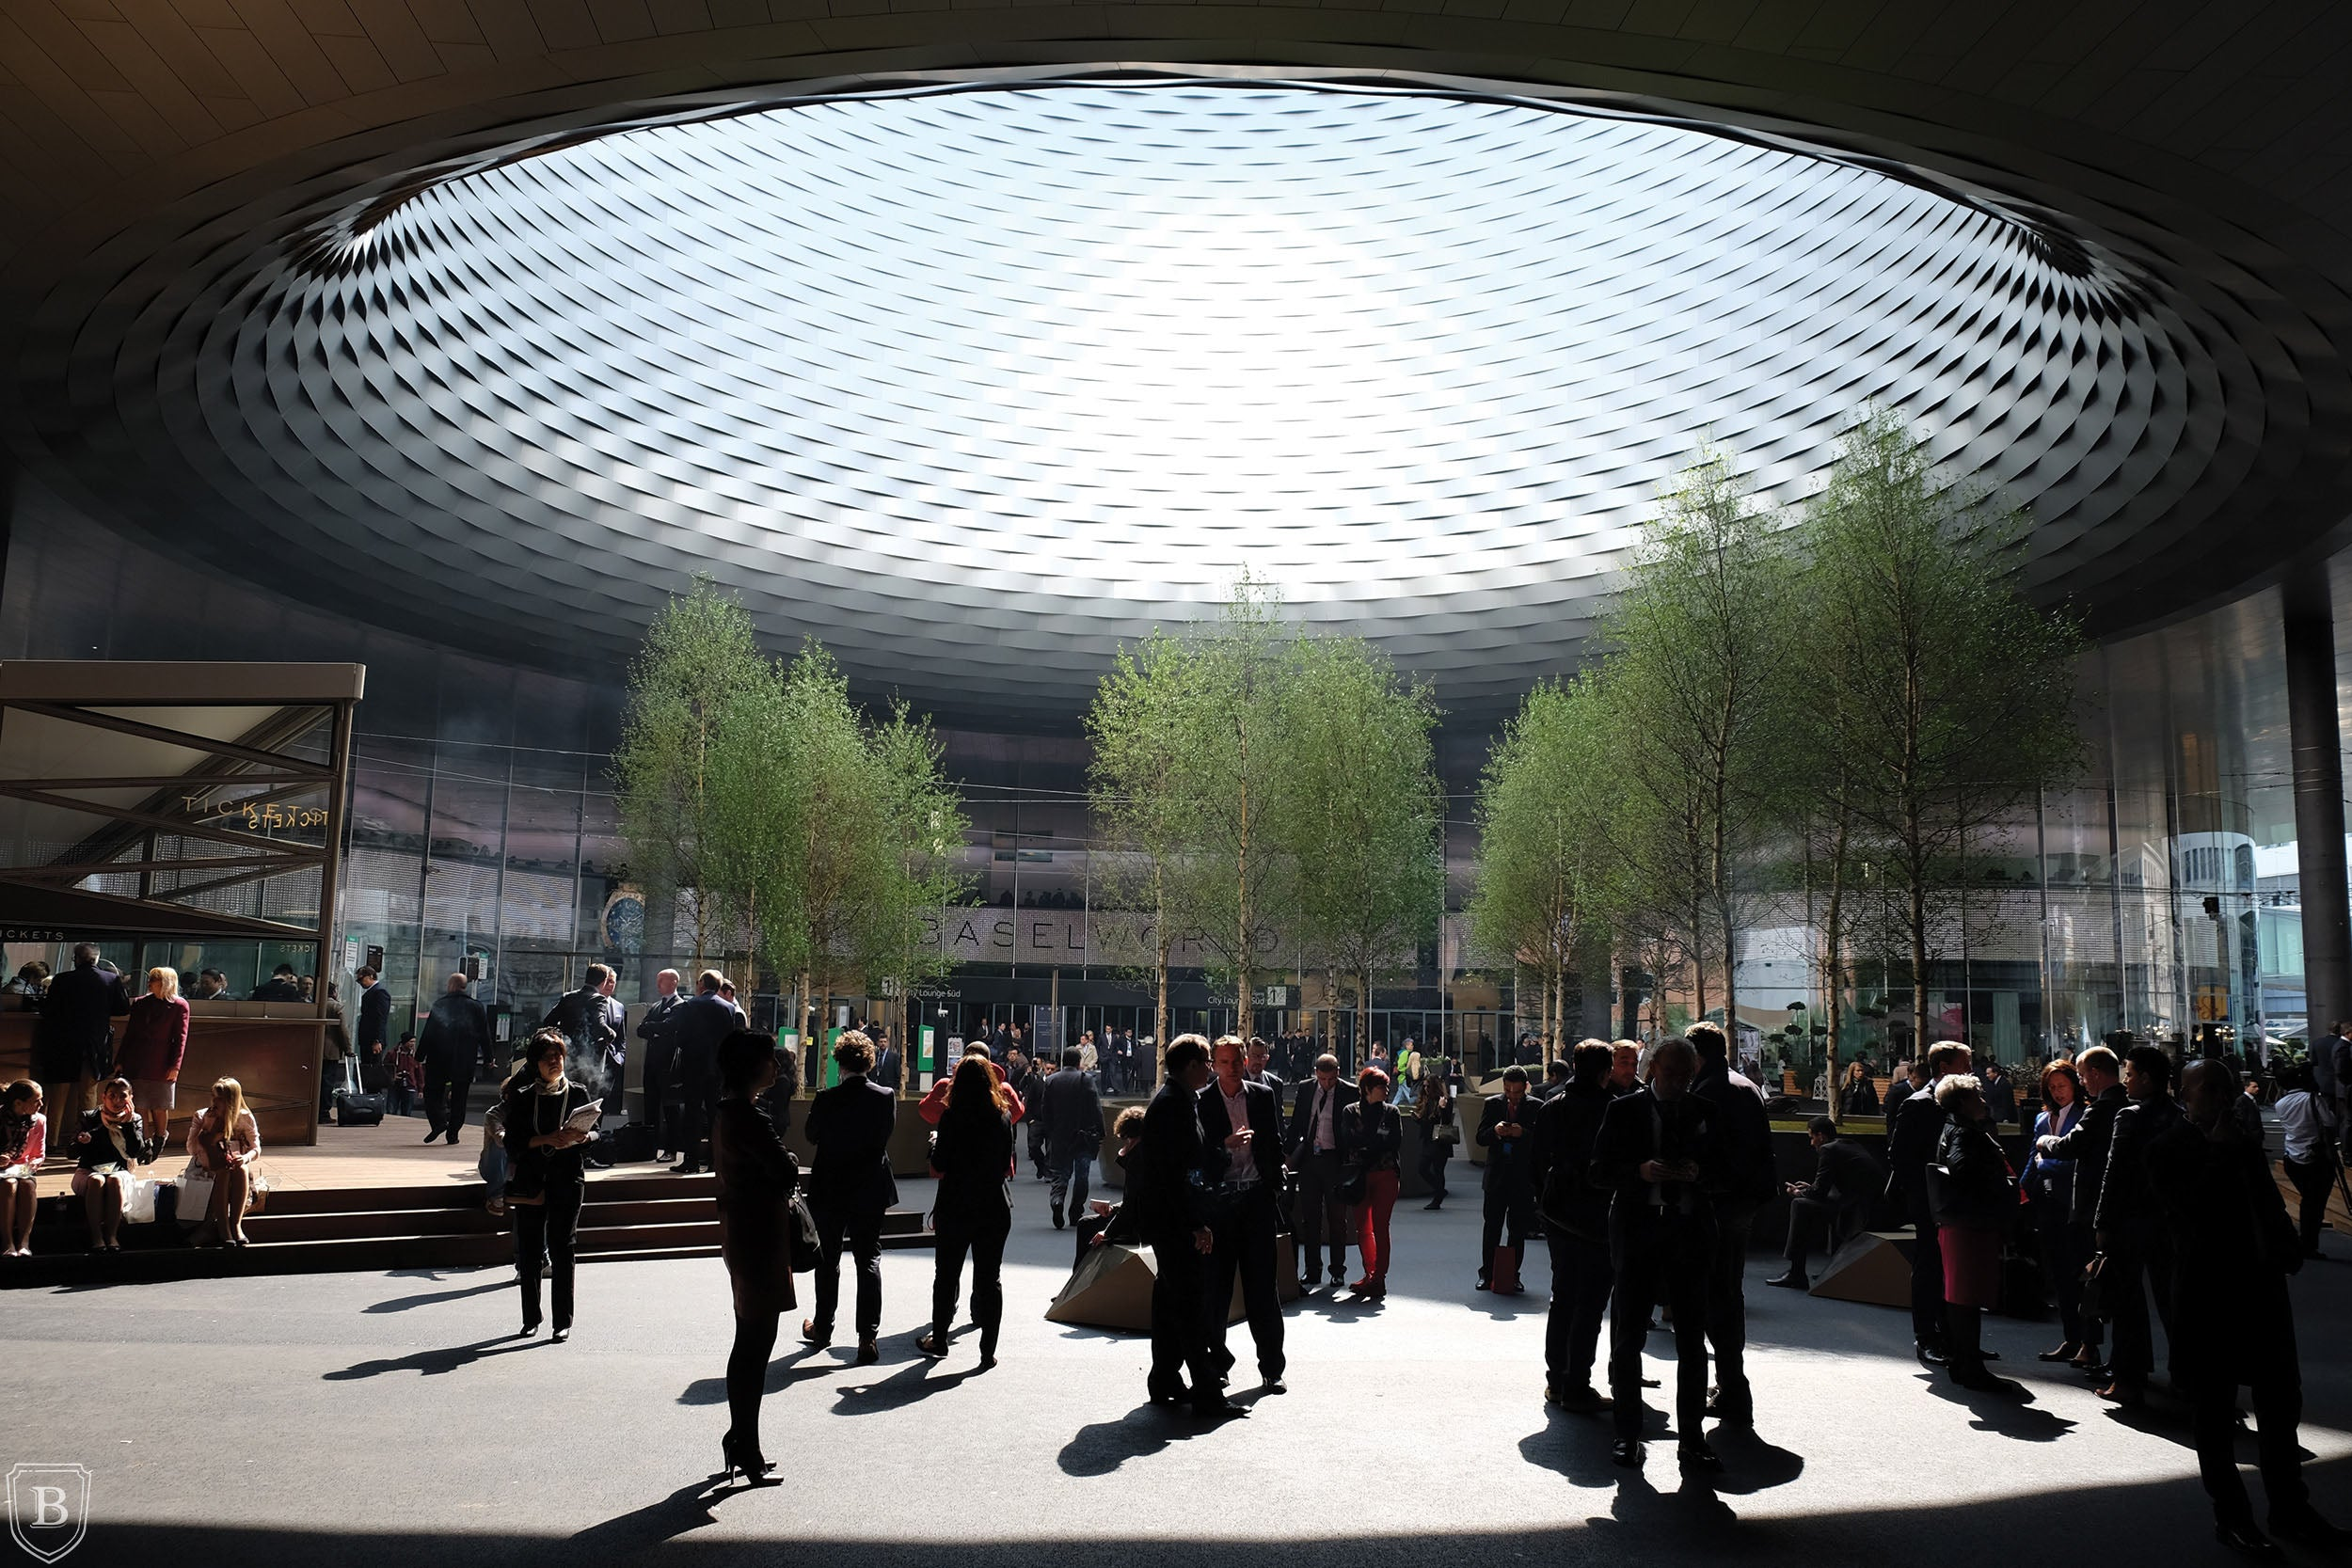 Baselworld Messeplatz